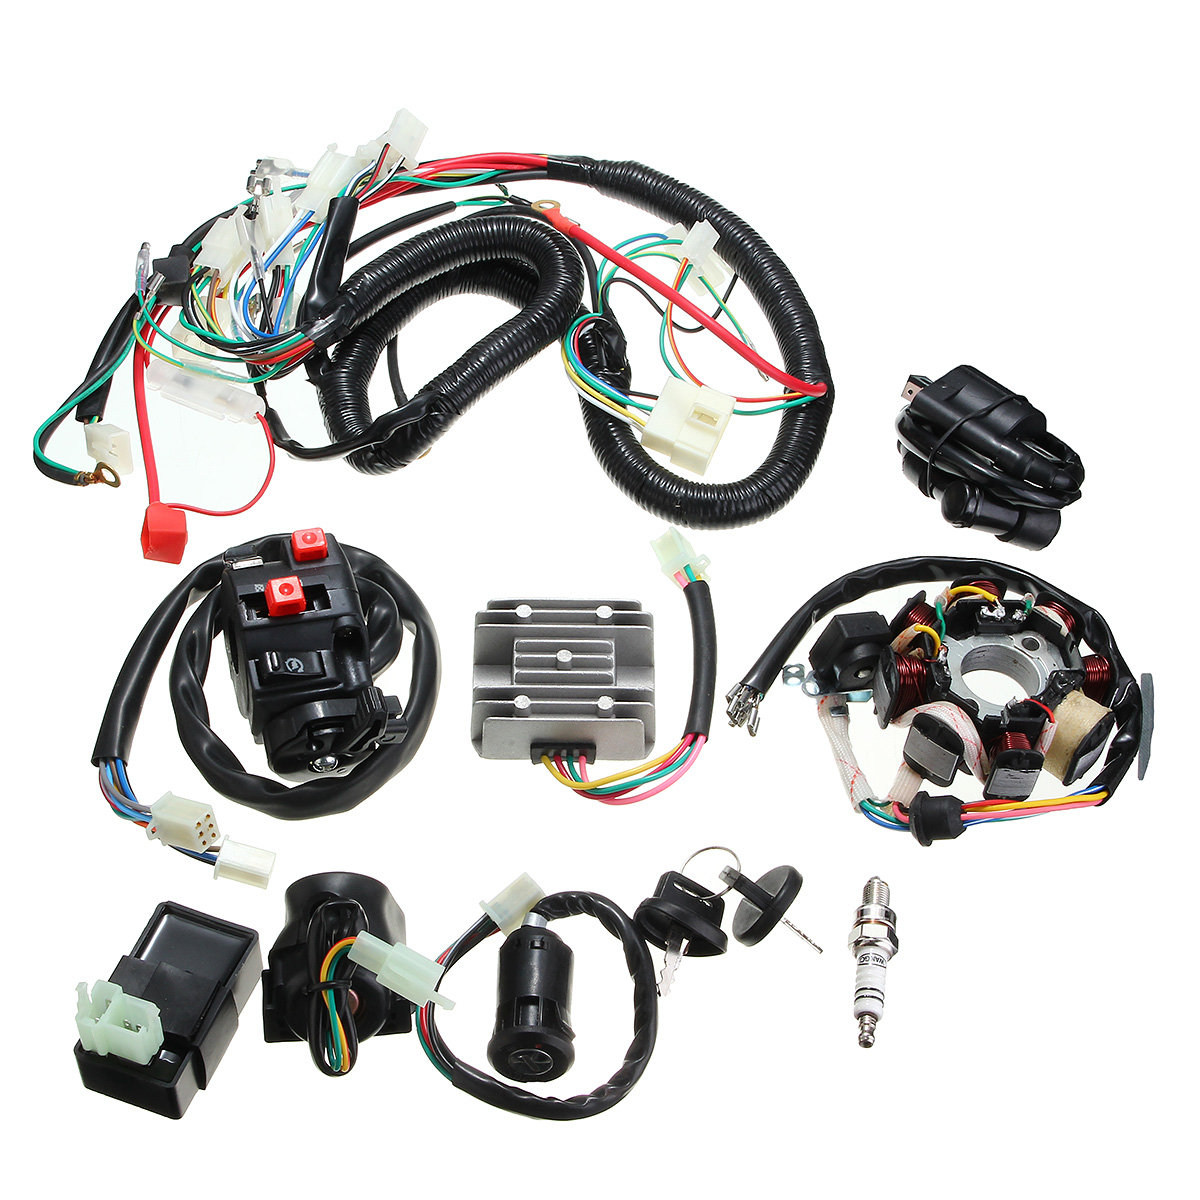 Other Motorcycle Parts 125cc 150cc 200cc 250cc Quad Electric Cdi Electrical Wire Harness Coil Stator Assembly Wiring Set